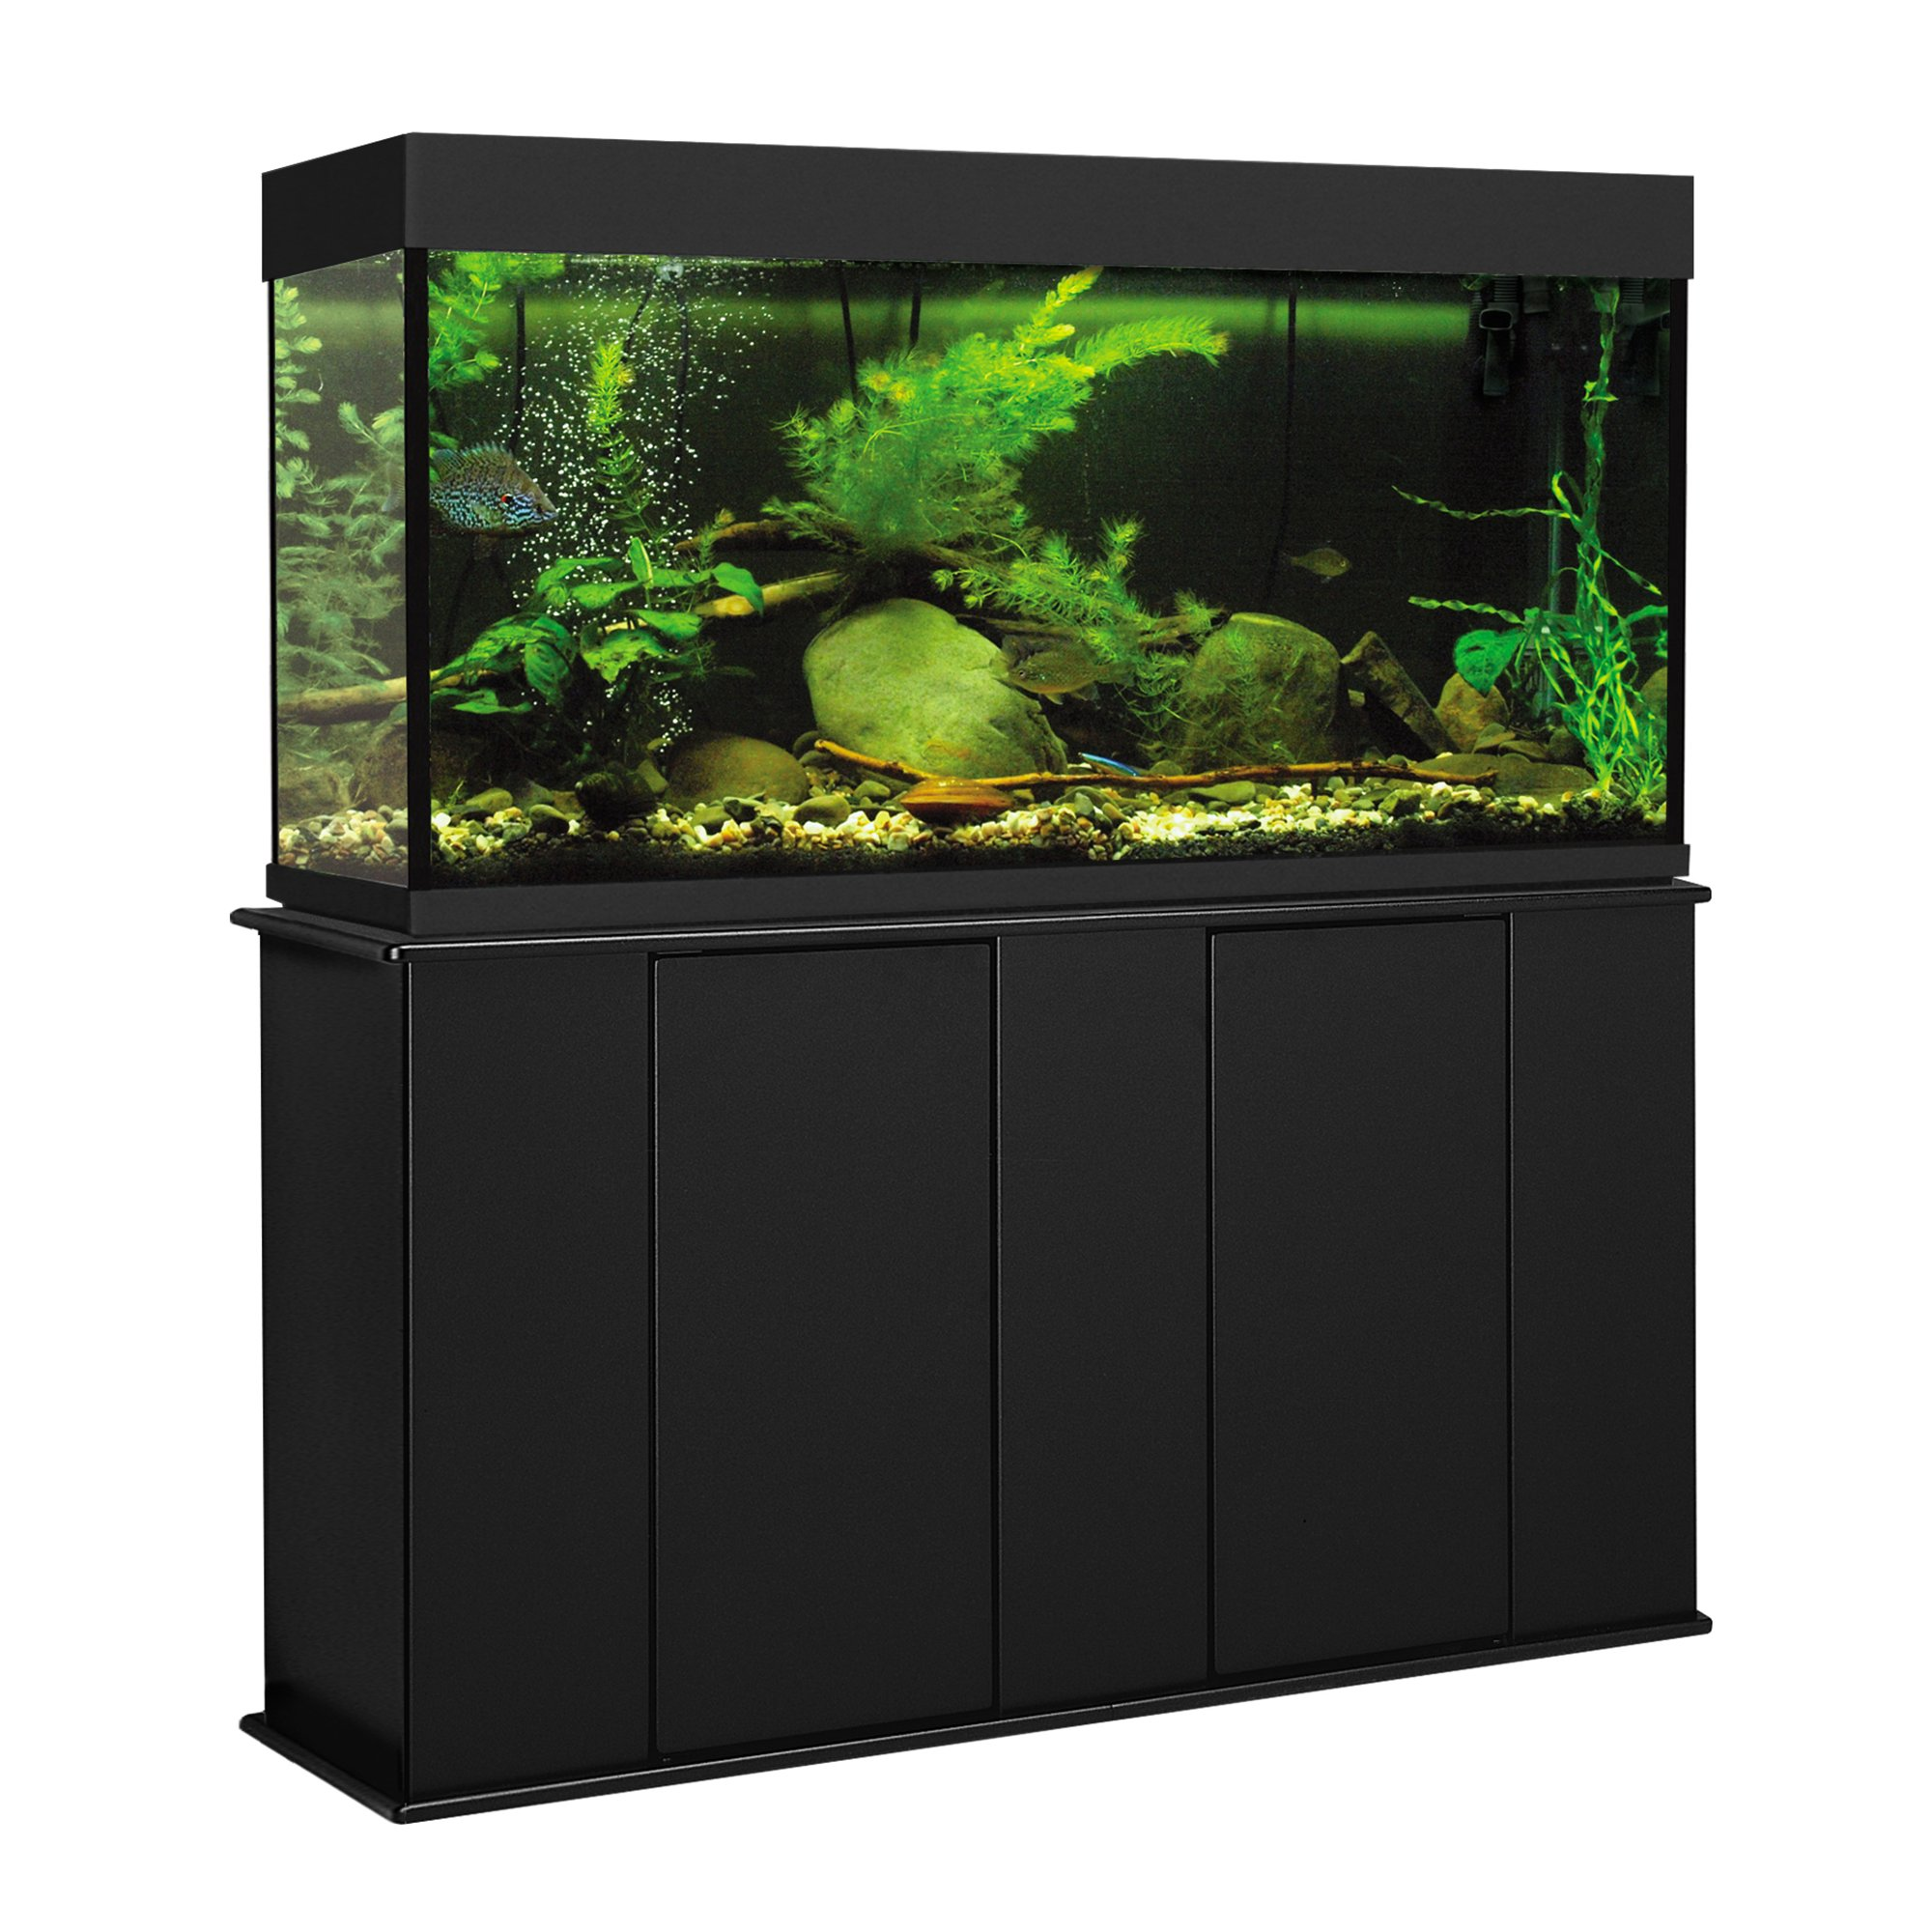 Aquatic fundamentals 55 gallon upright aquarium stand petco for 55 gallon fish tank stand